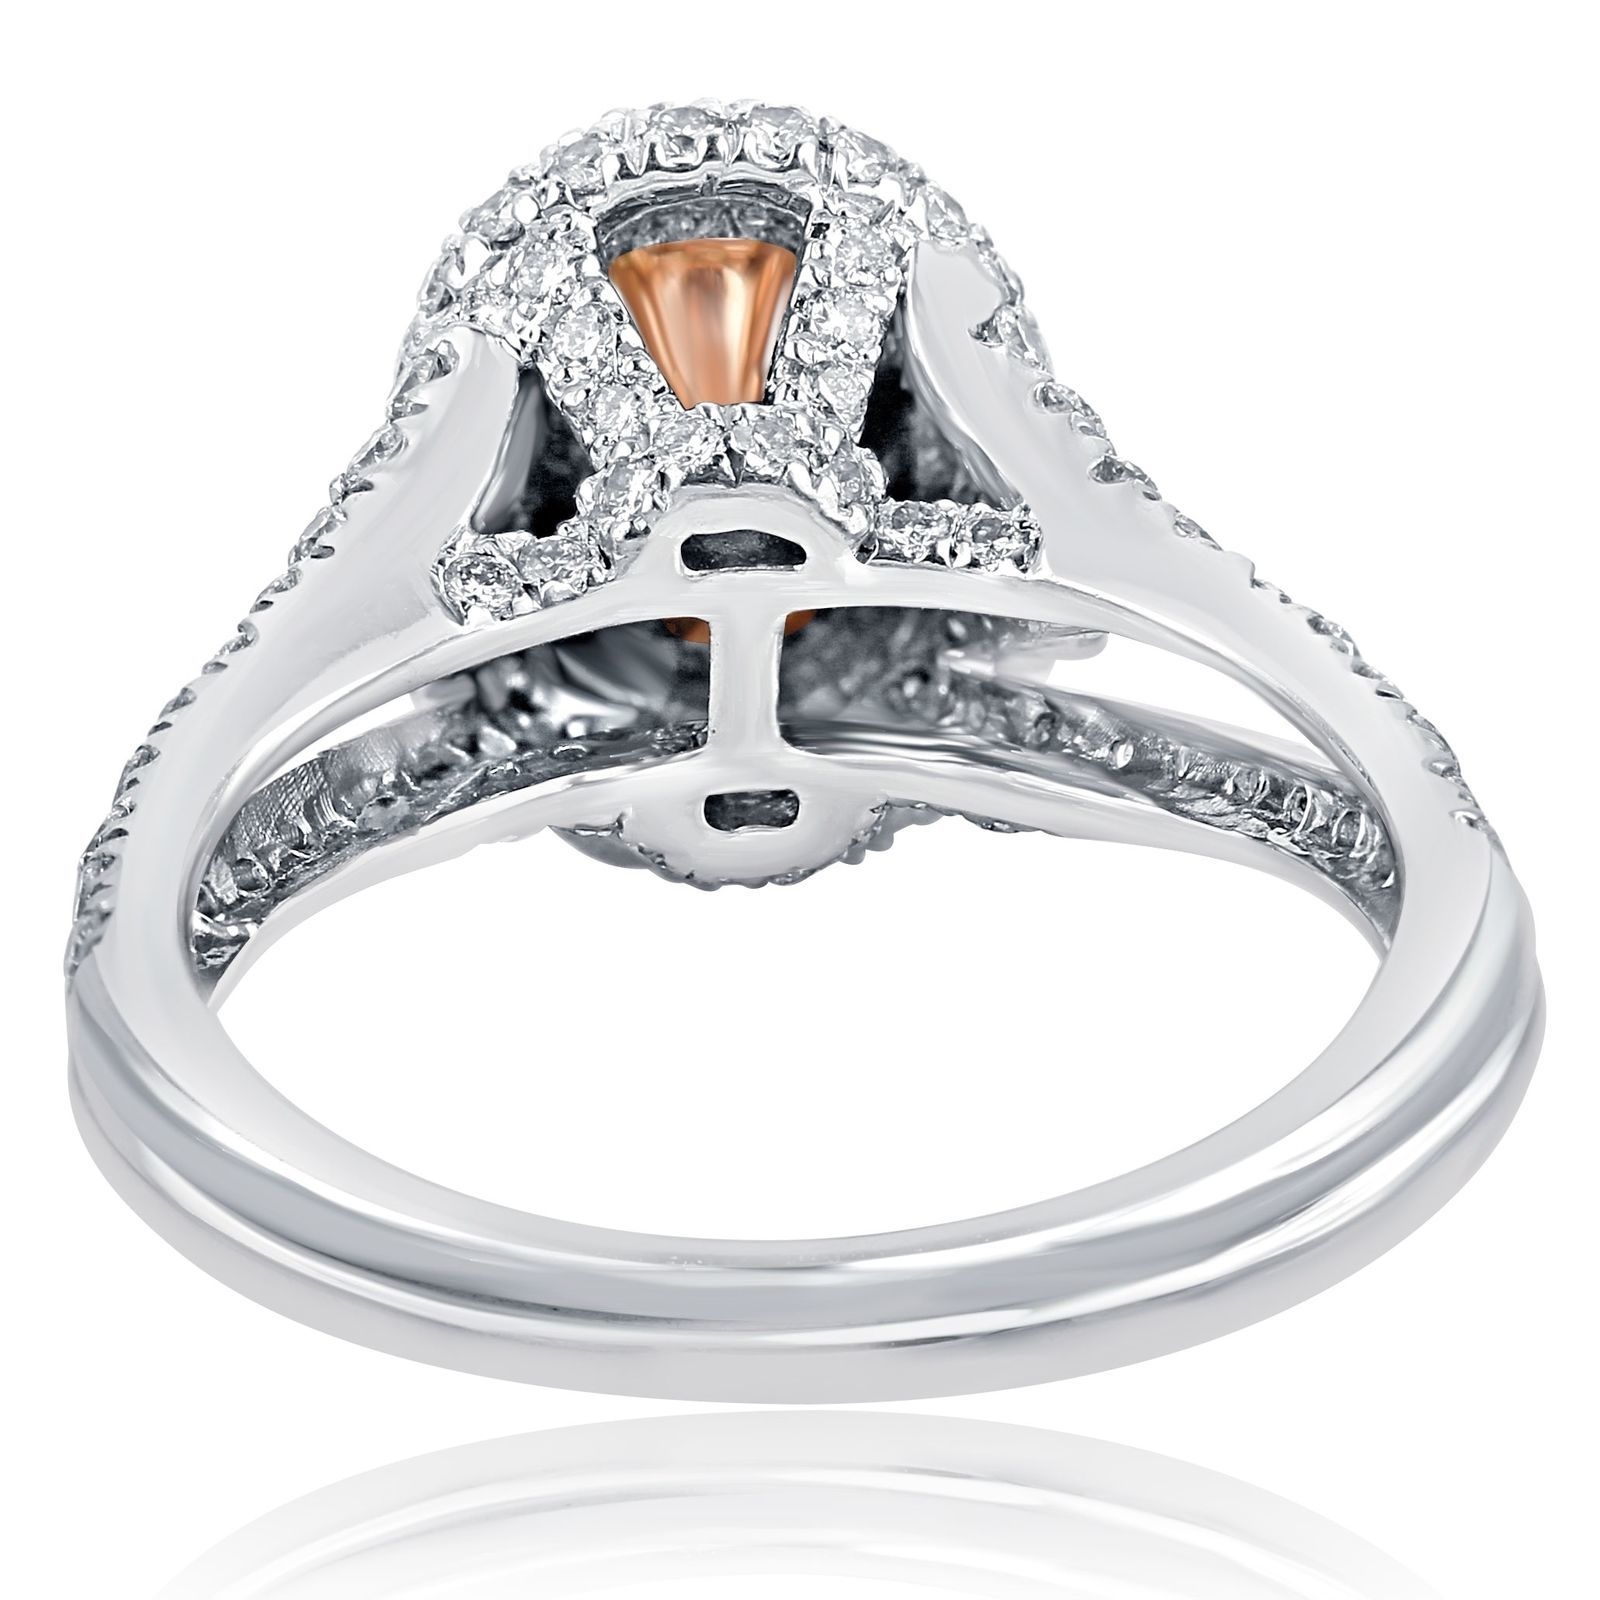 2.01 TCW Oval Cut Brownish Yellow Diamond Engagement Halo Ring 18k White Gold Sp